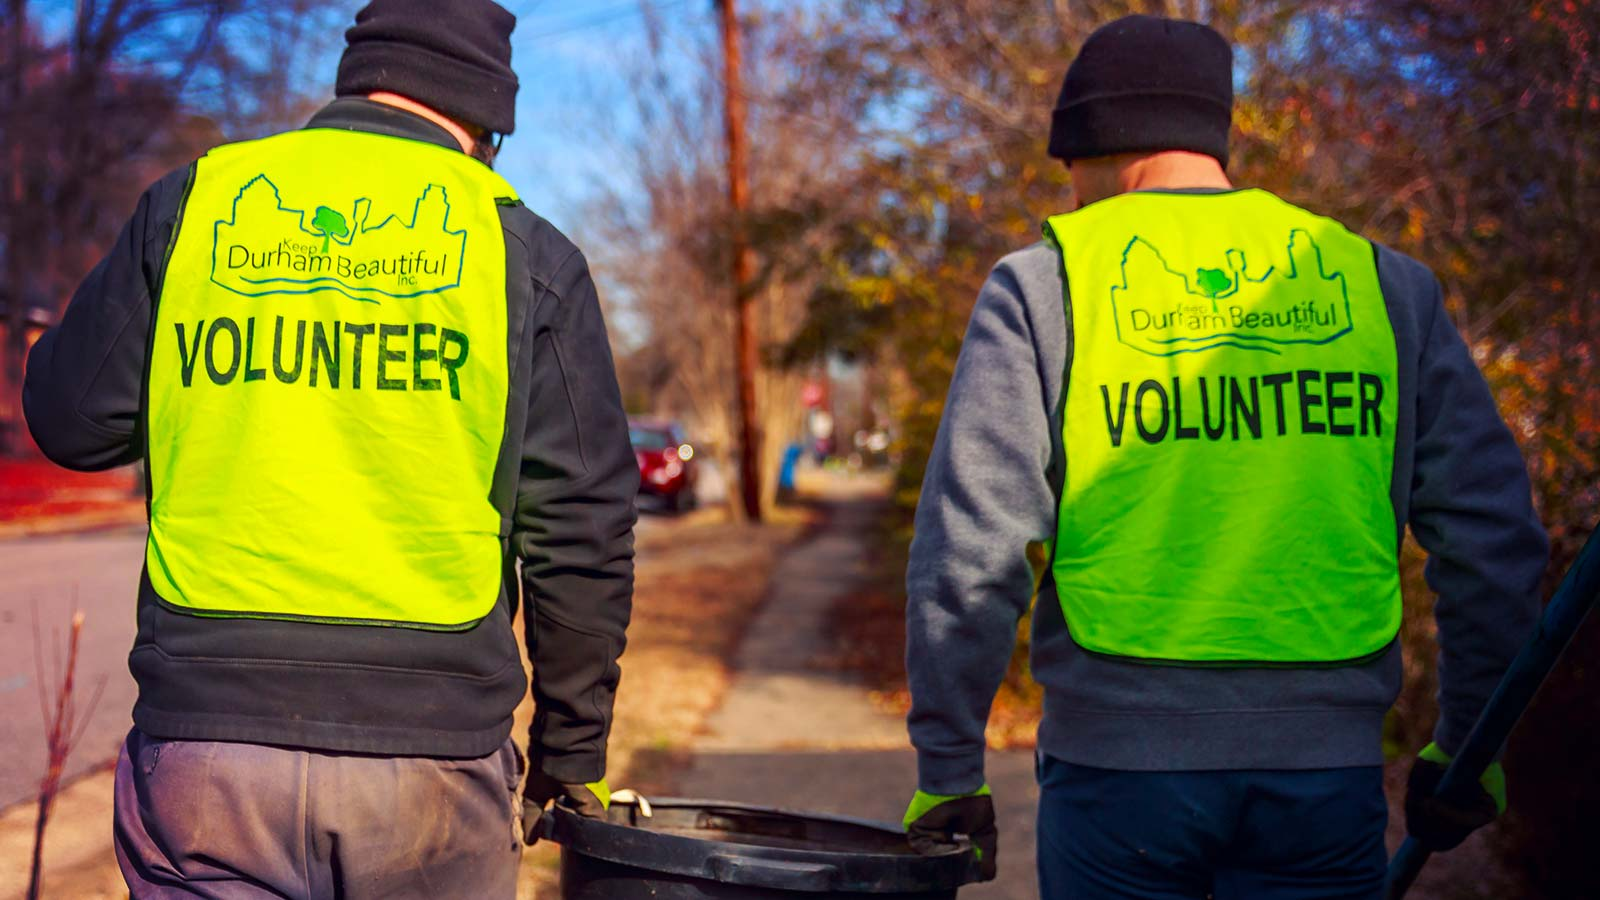 Brightening Up Neighborhoods Across Durham